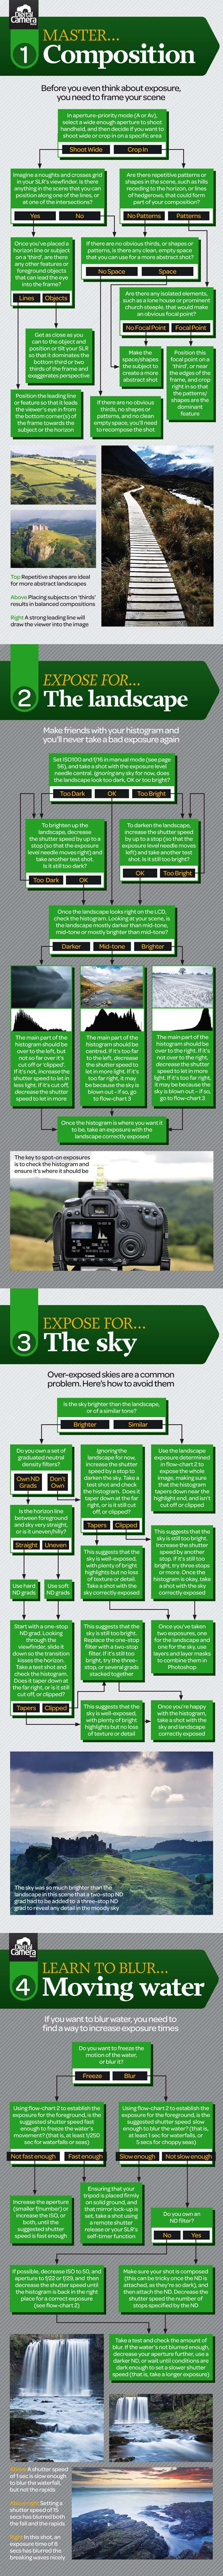 Master Composition: Free landscape photography cheat sheet- Digital Camera World